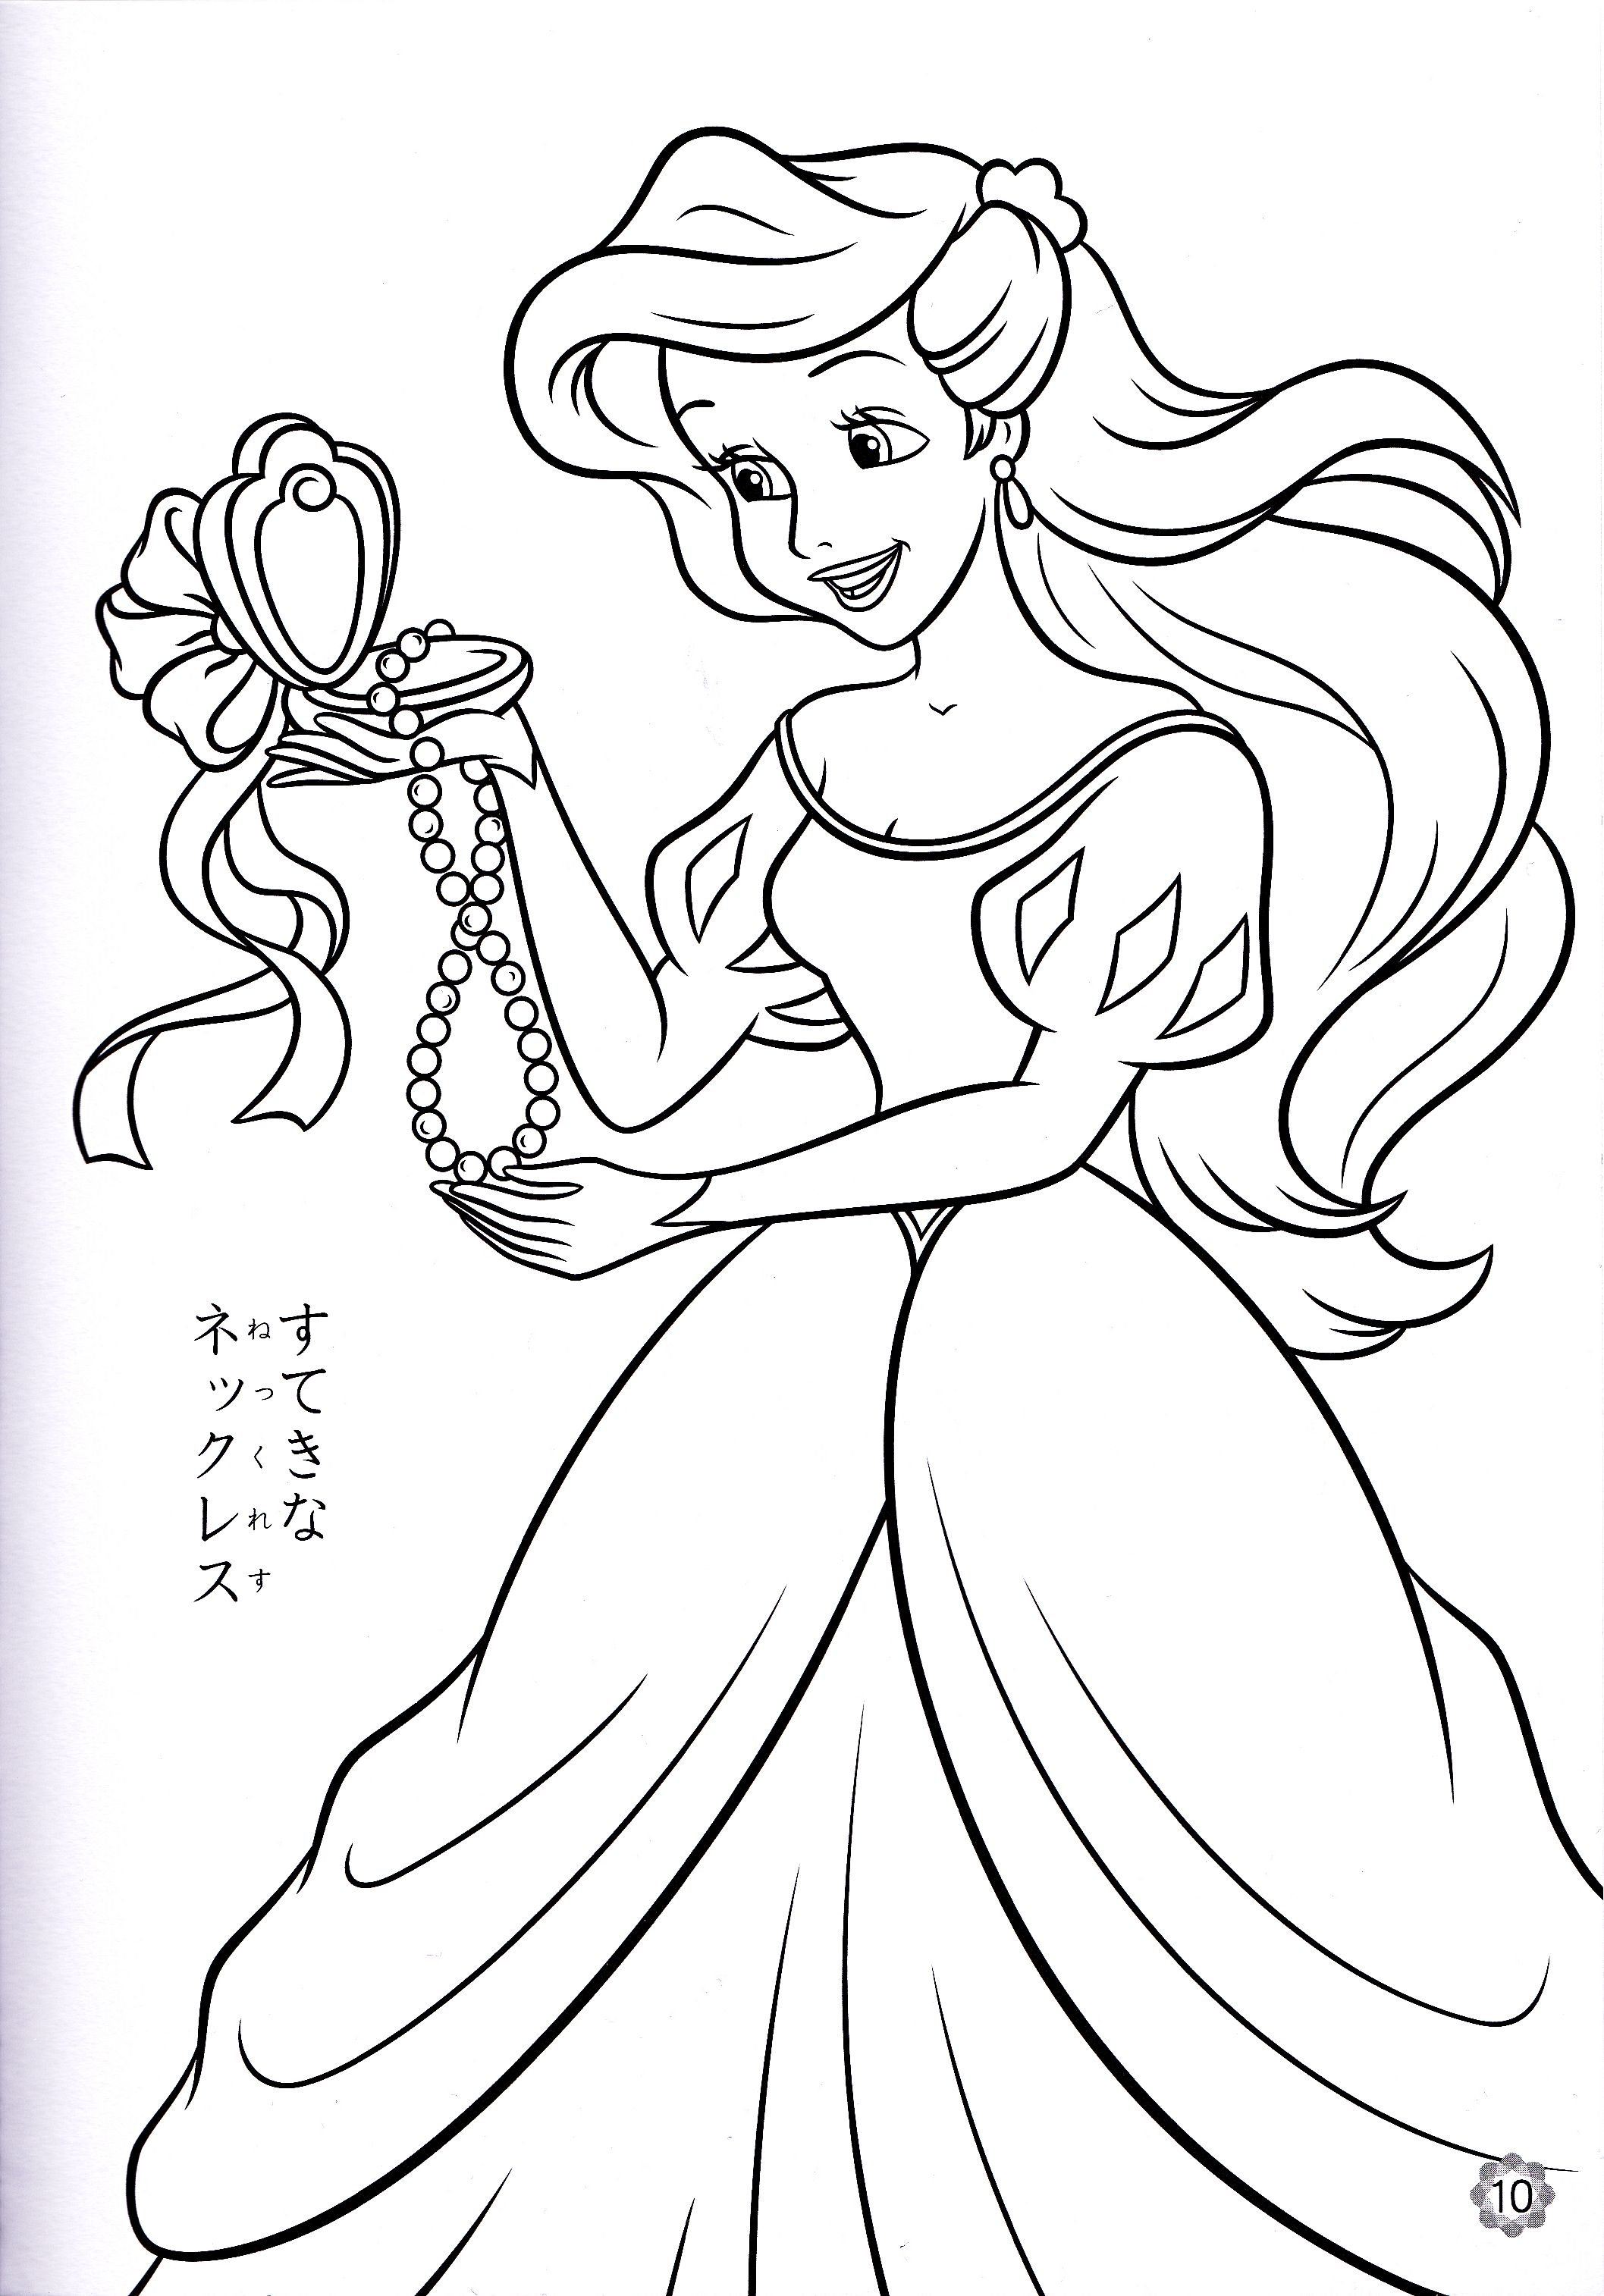 Walt Disney Characters Photo Walt Disney Coloring Pages Princess Ariel Ariel Coloring Pages Mermaid Coloring Pages Disney Coloring Sheets